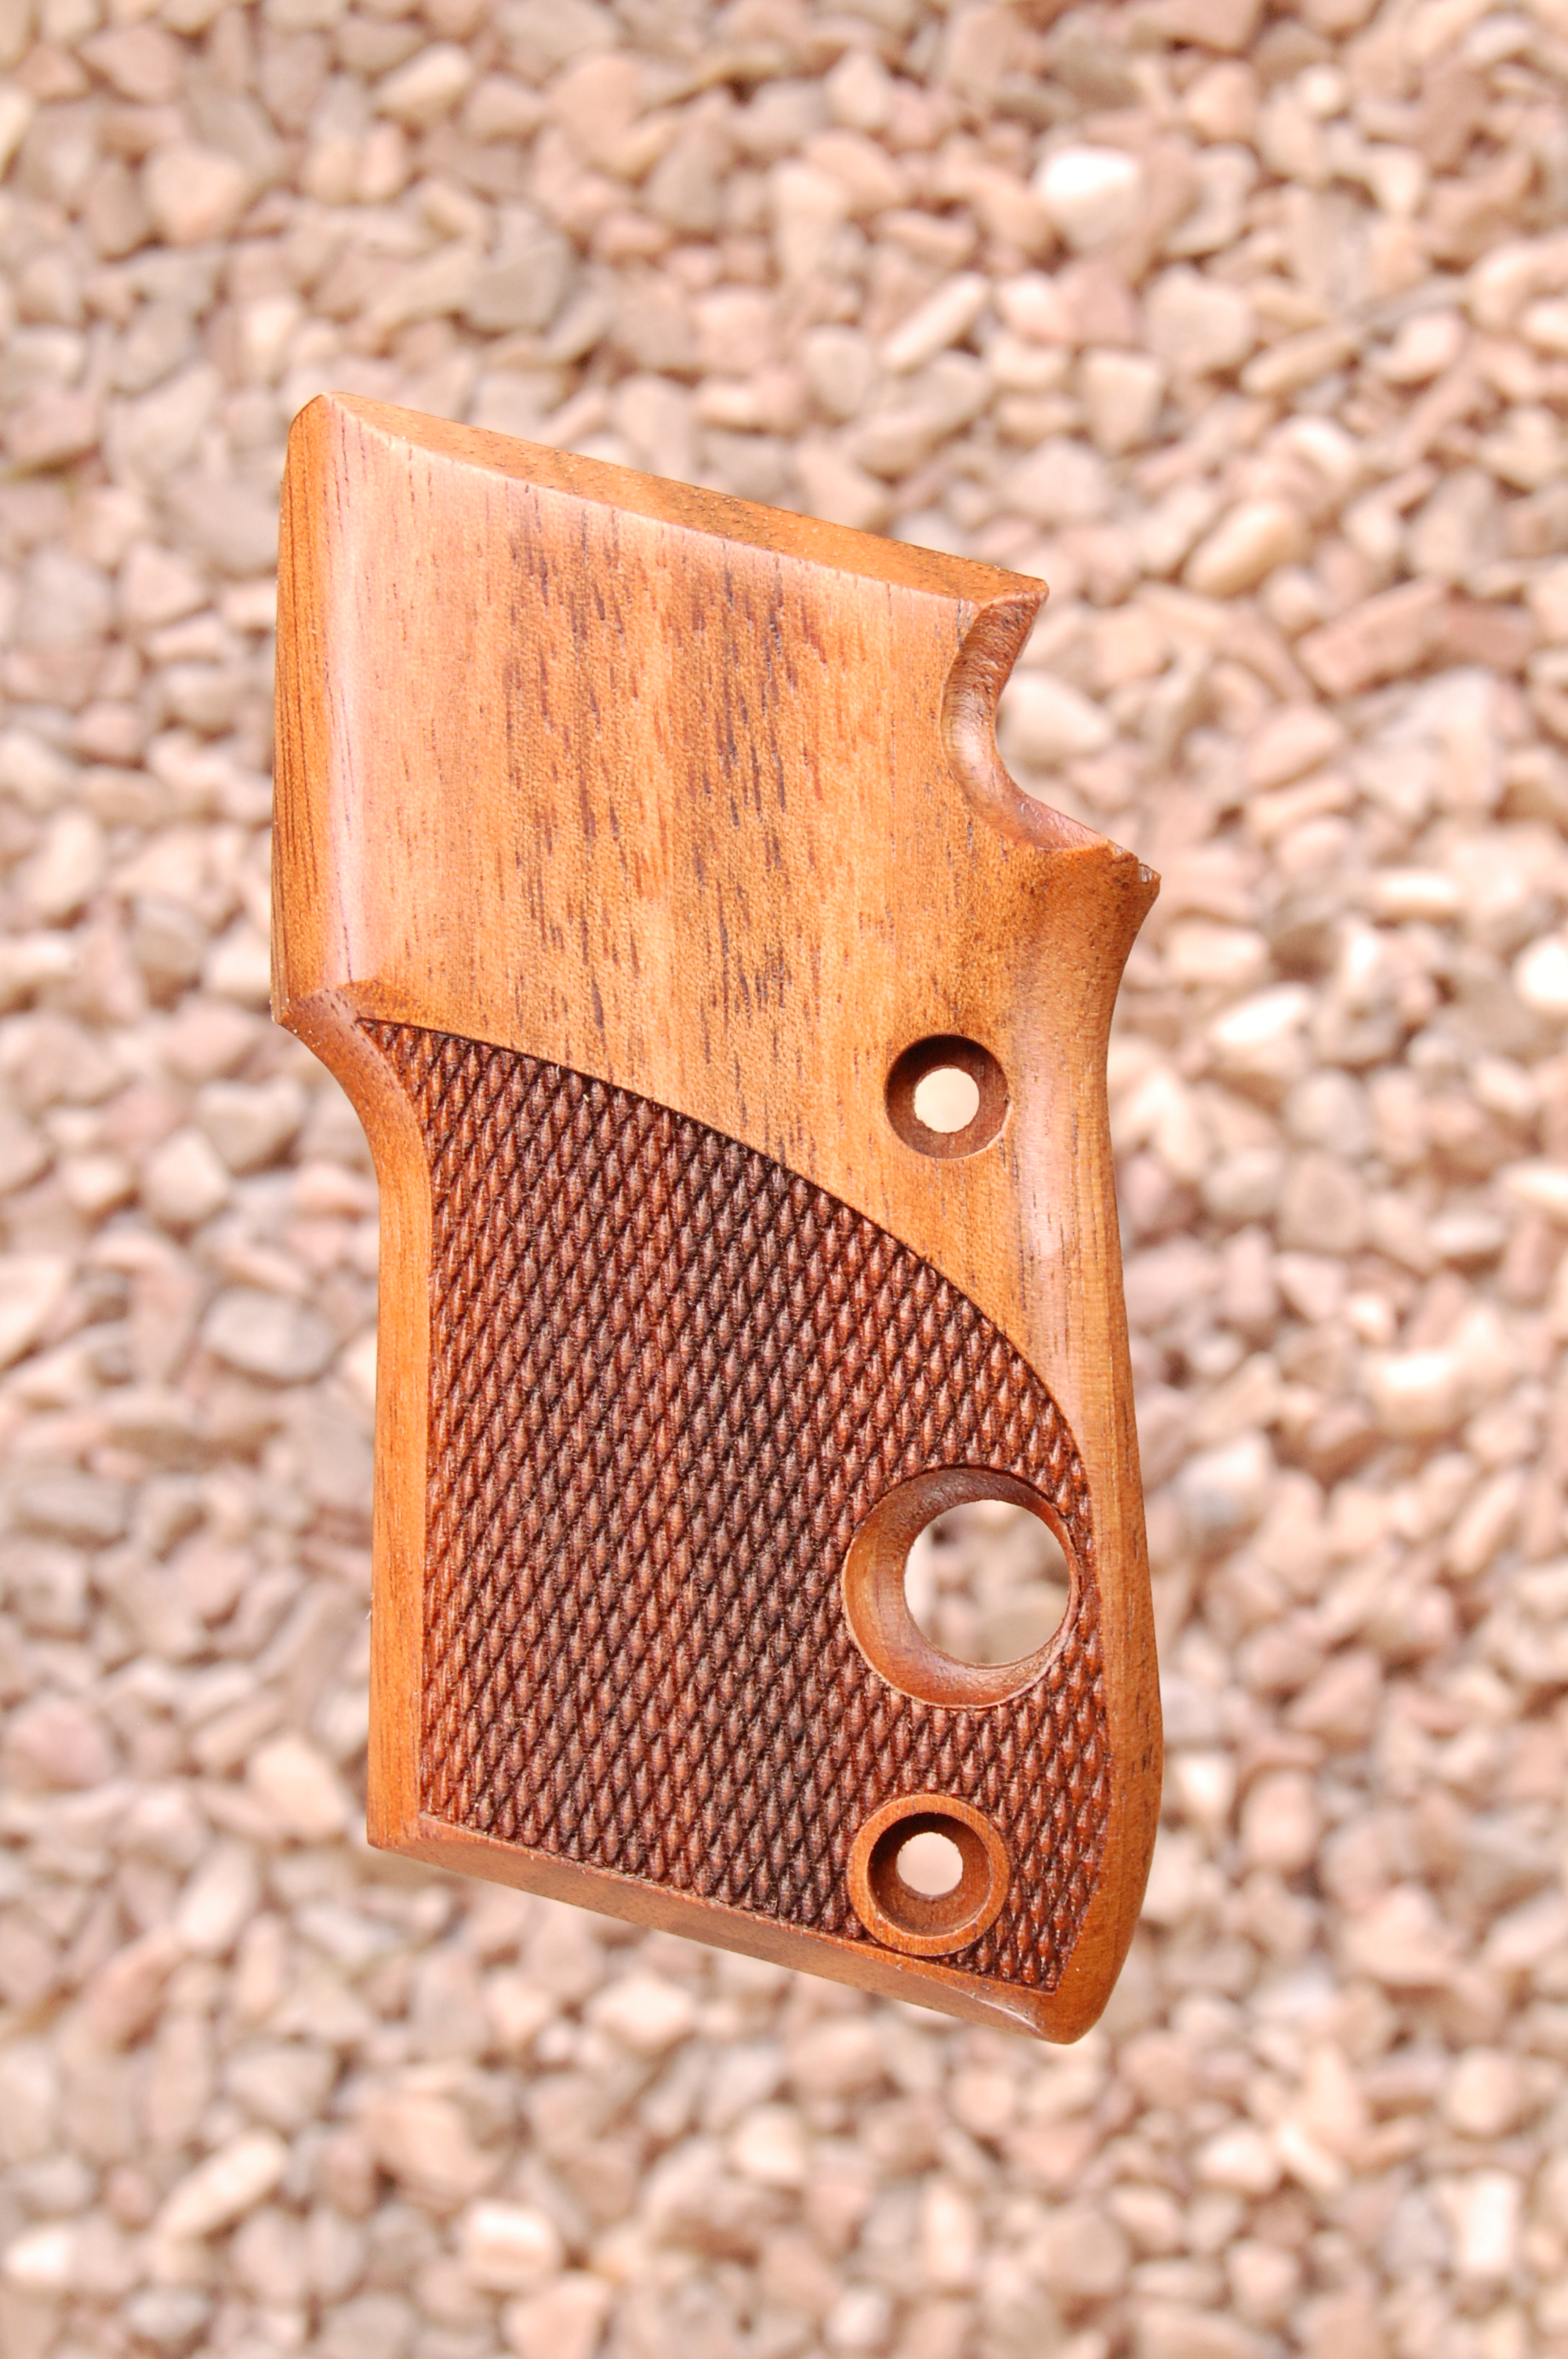 BERETTA 21A grips (checkered) - full size